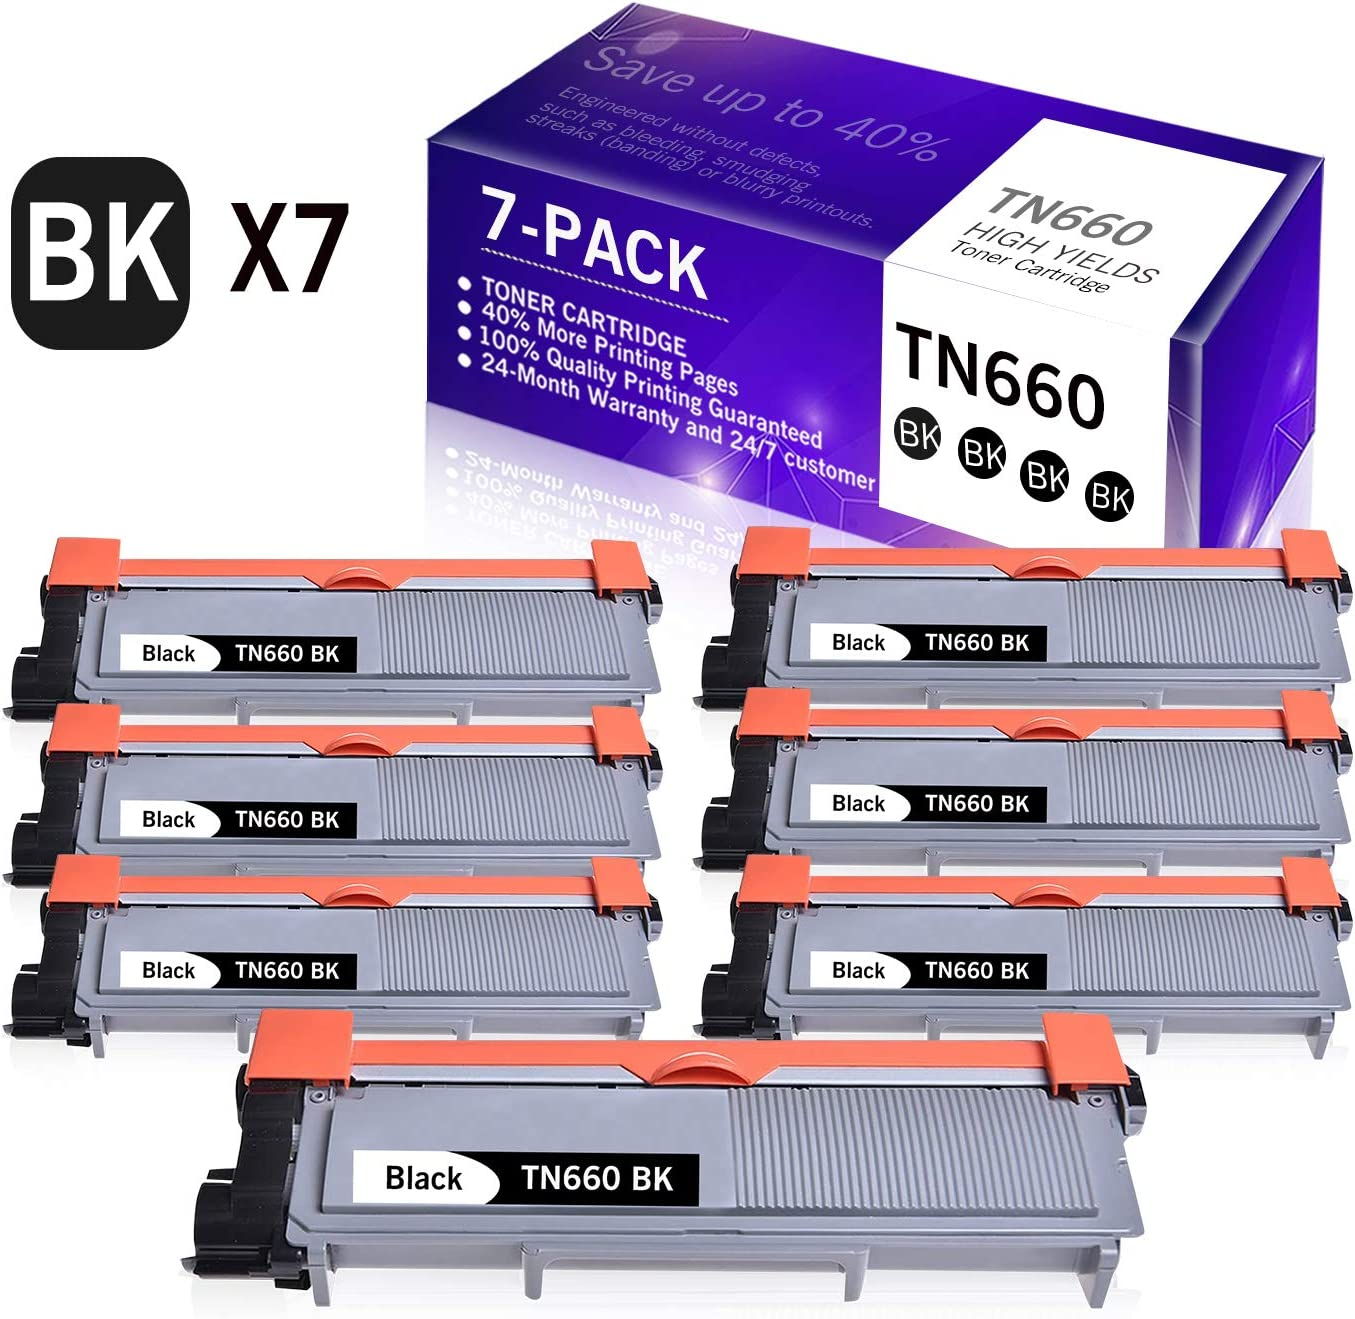 7-Pack Some reservation Black Compatible OFFer Toner Cartridge Replacement for Brother